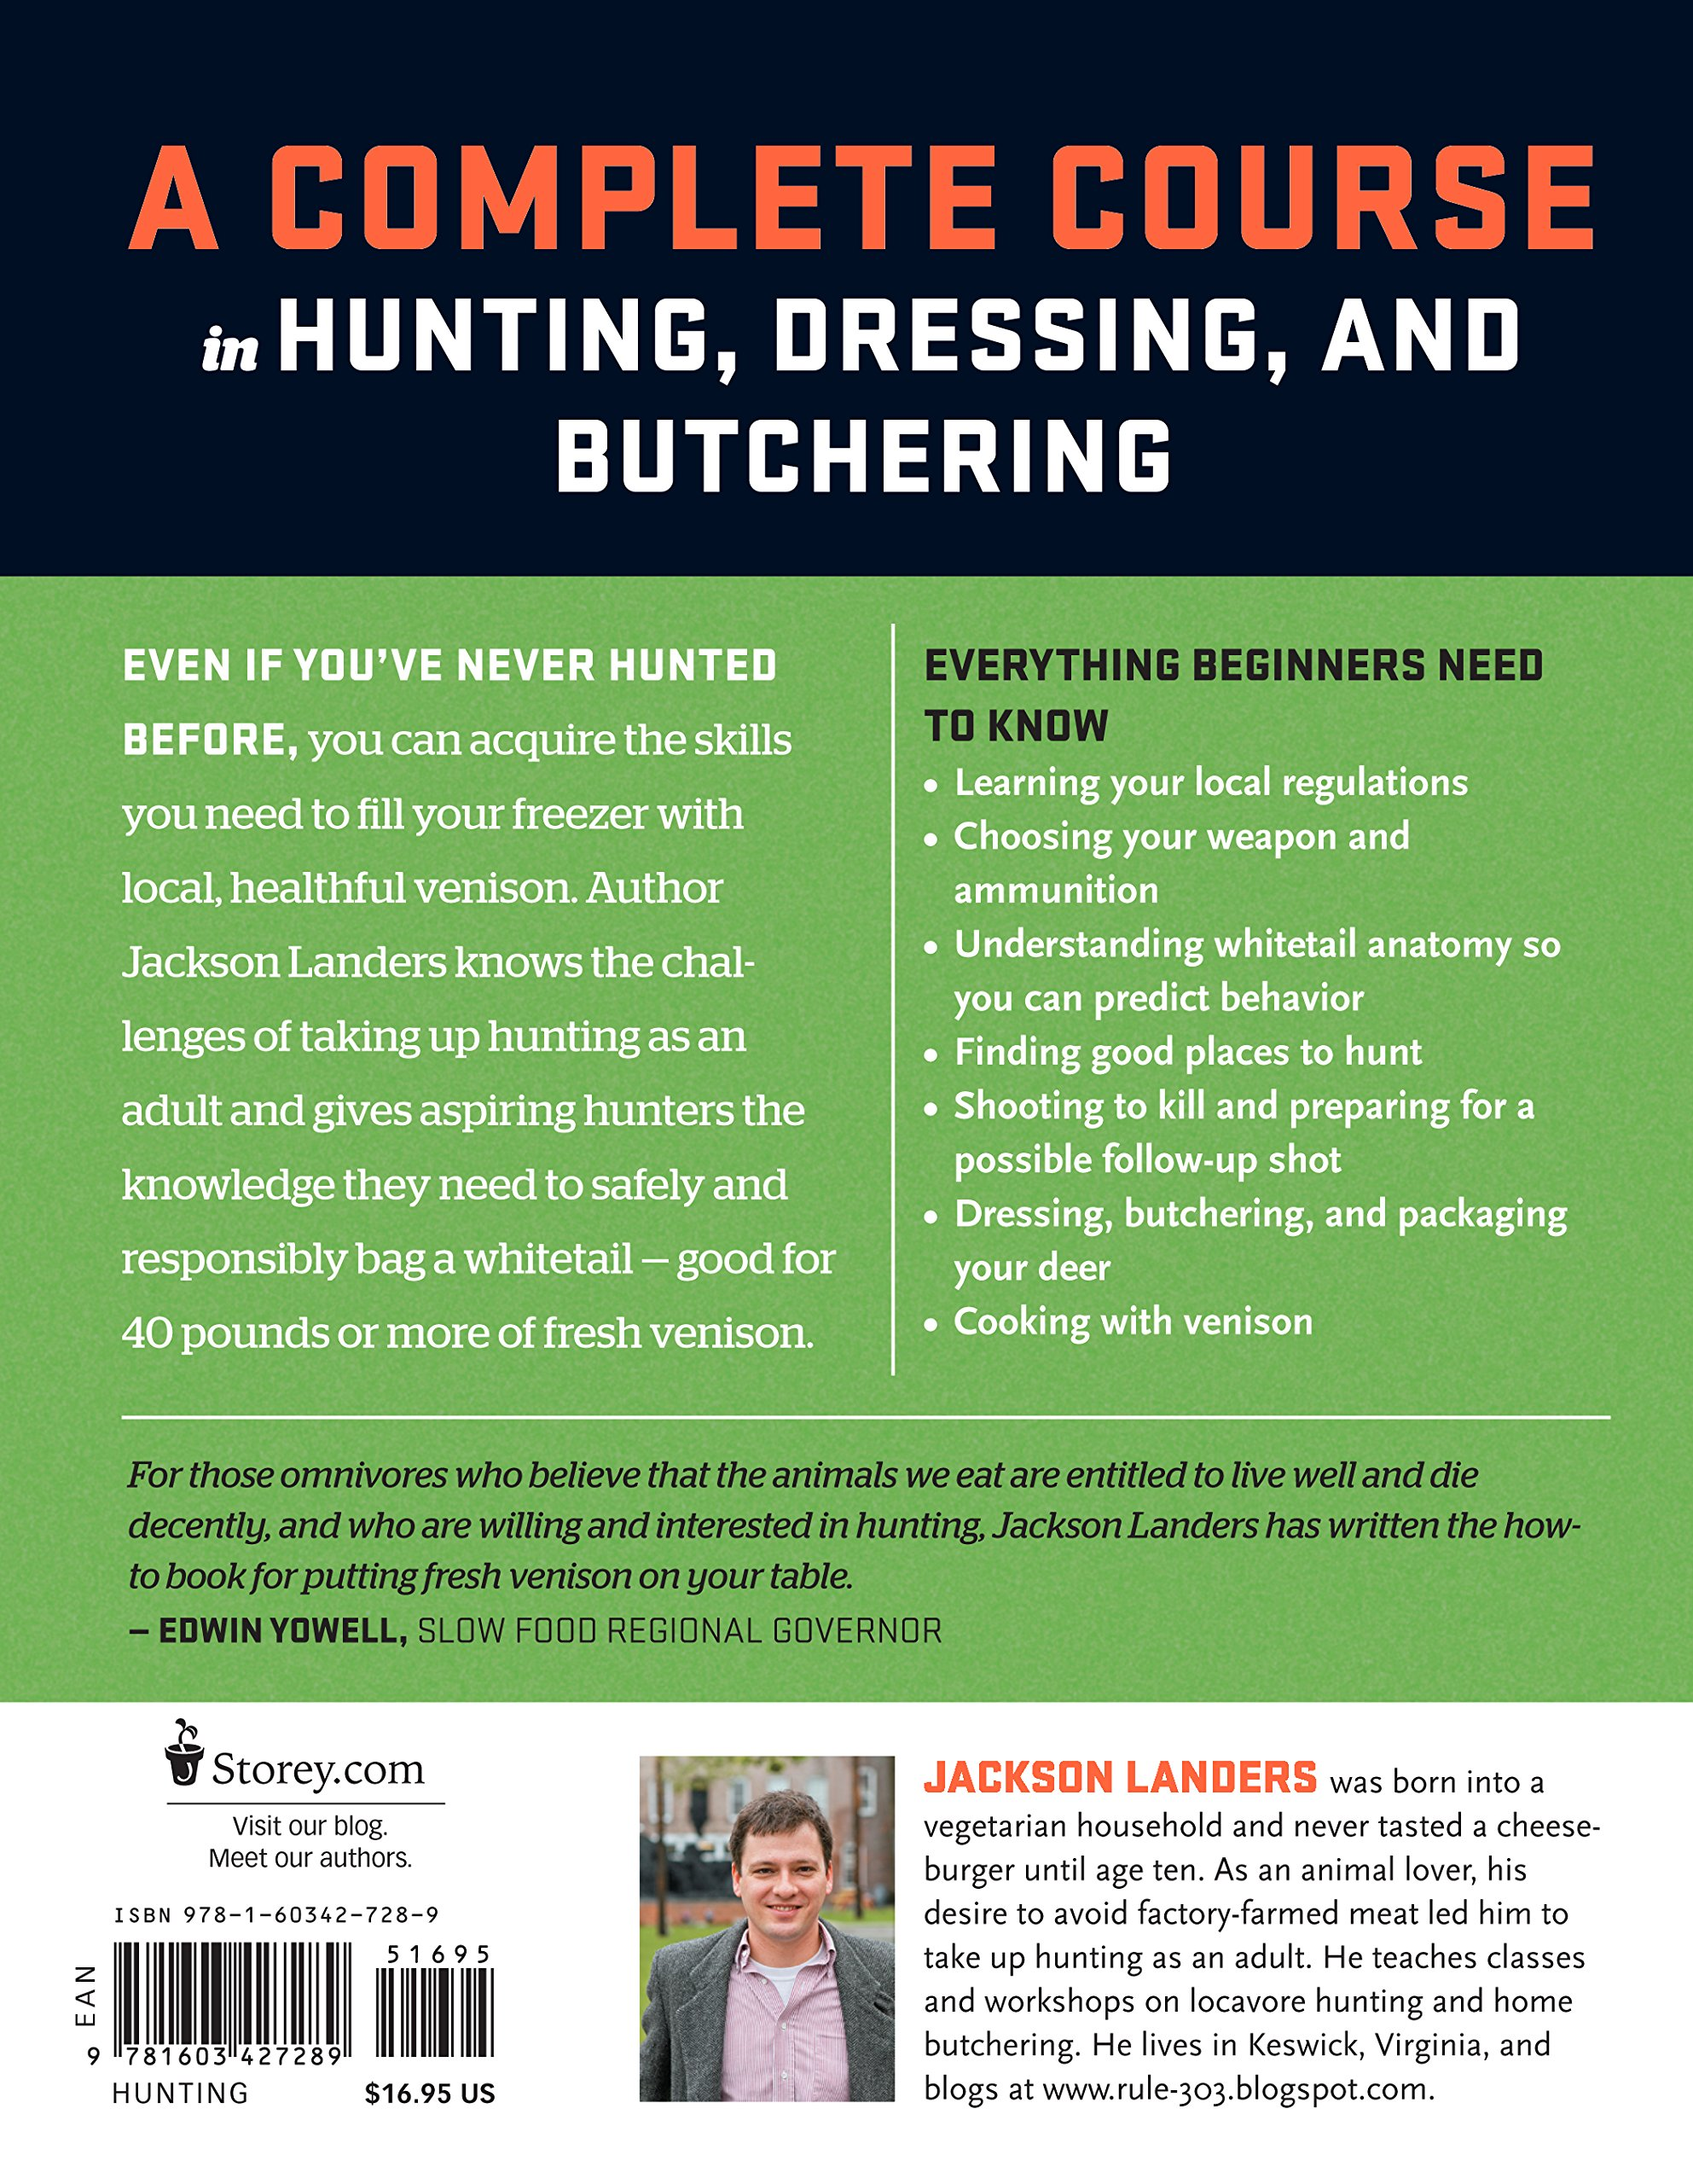 The Beginner's Guide to Hunting Deer for Food (Beginner's Guide To...  (Storey)): Jackson Landers: 9781603427289: Amazon.com: Books